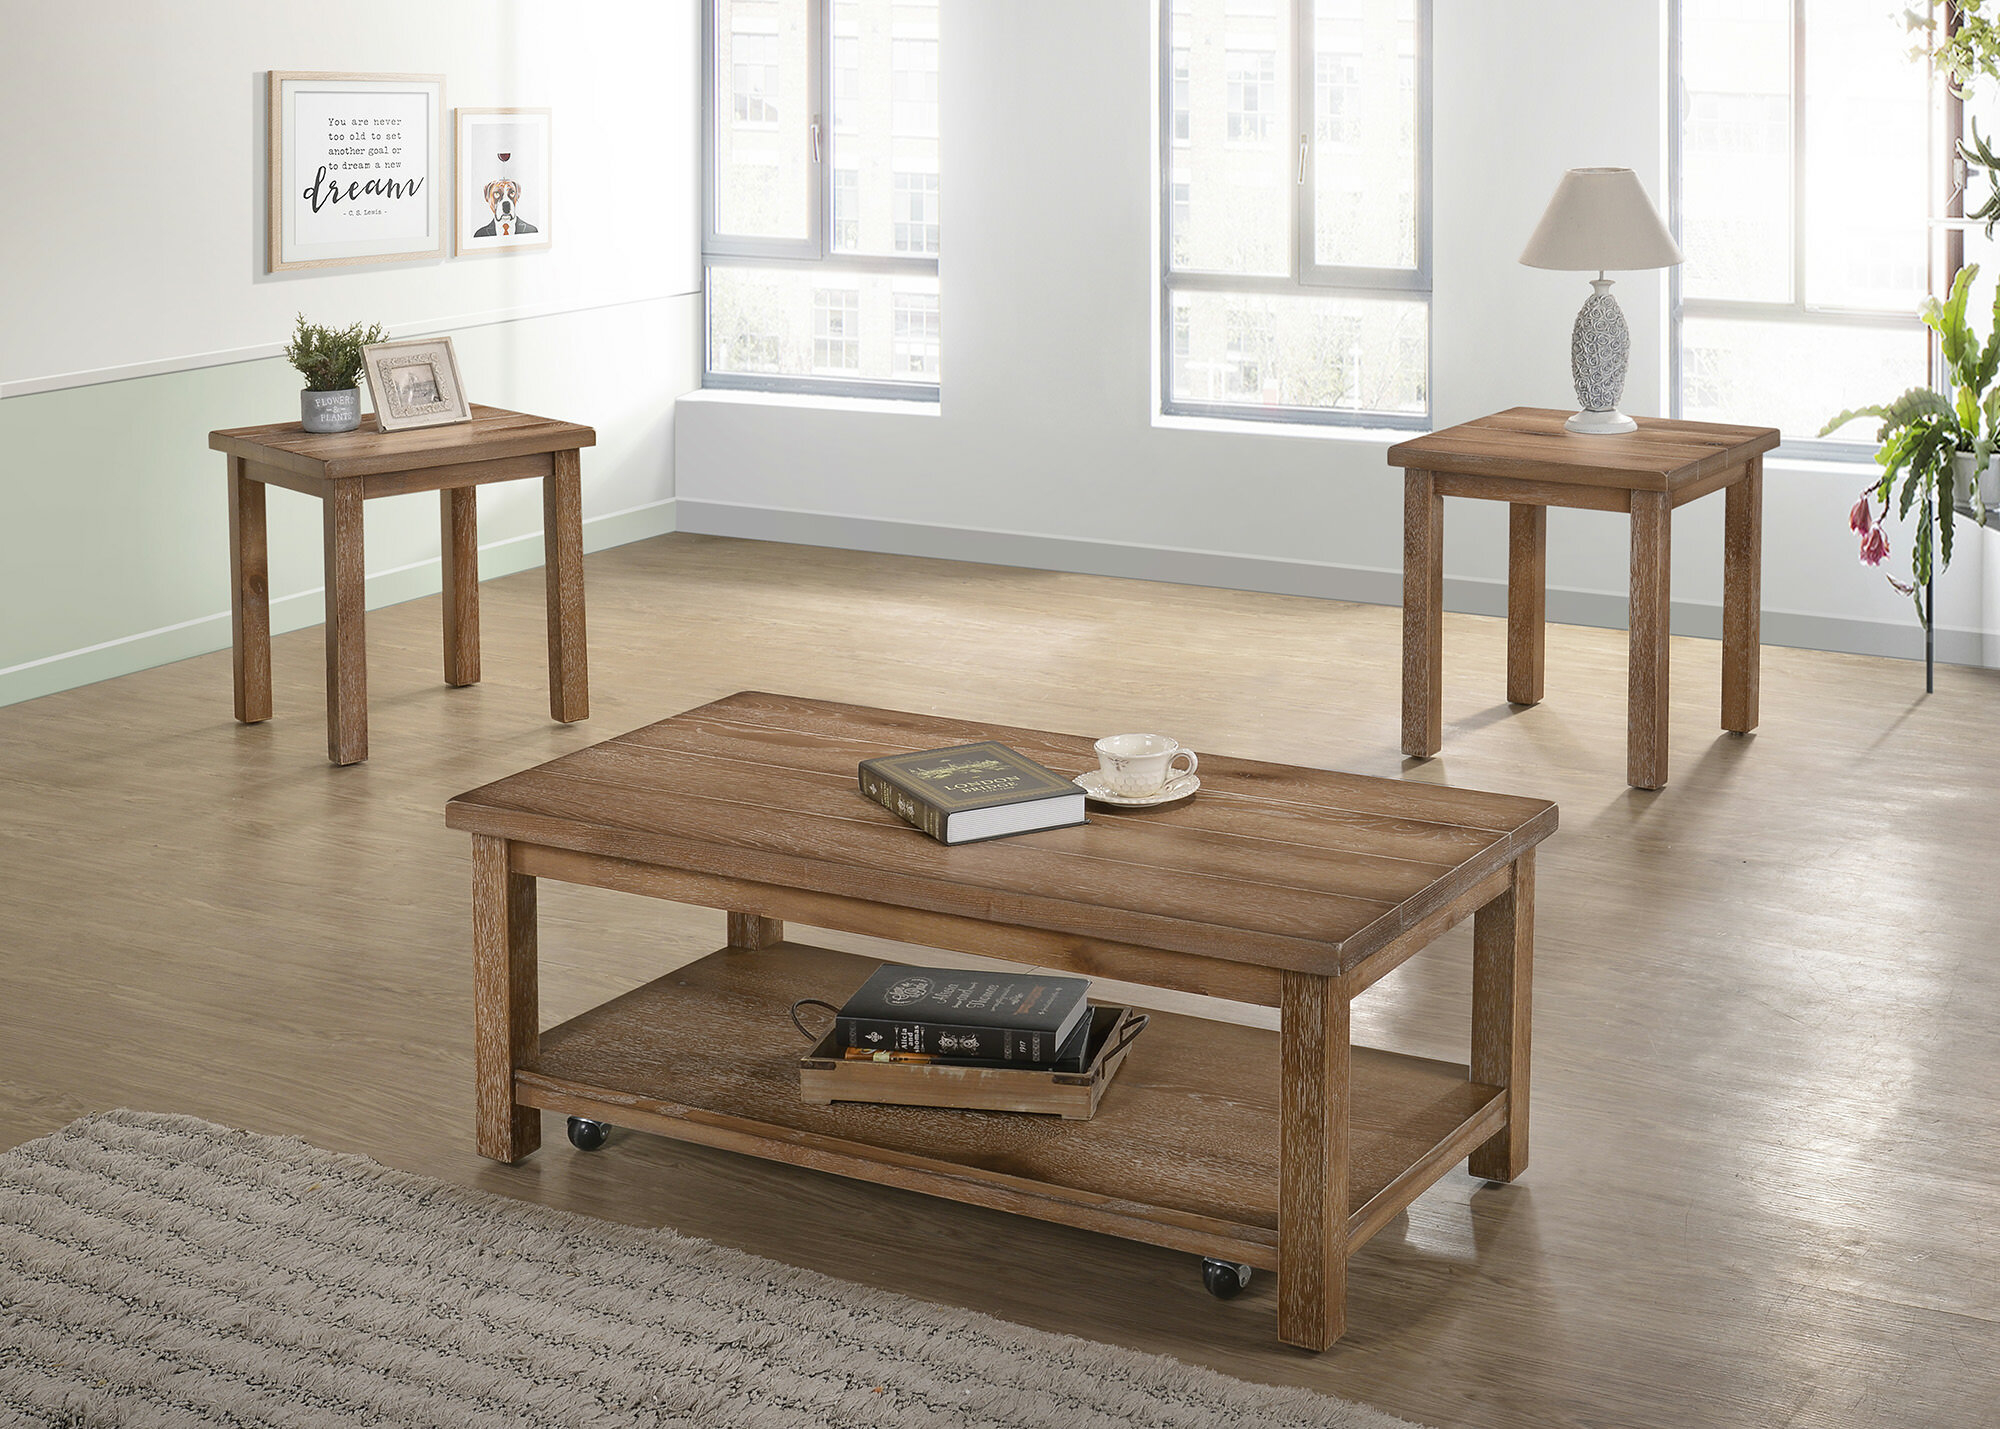 Tapley 3 Piece Coffee Table Set